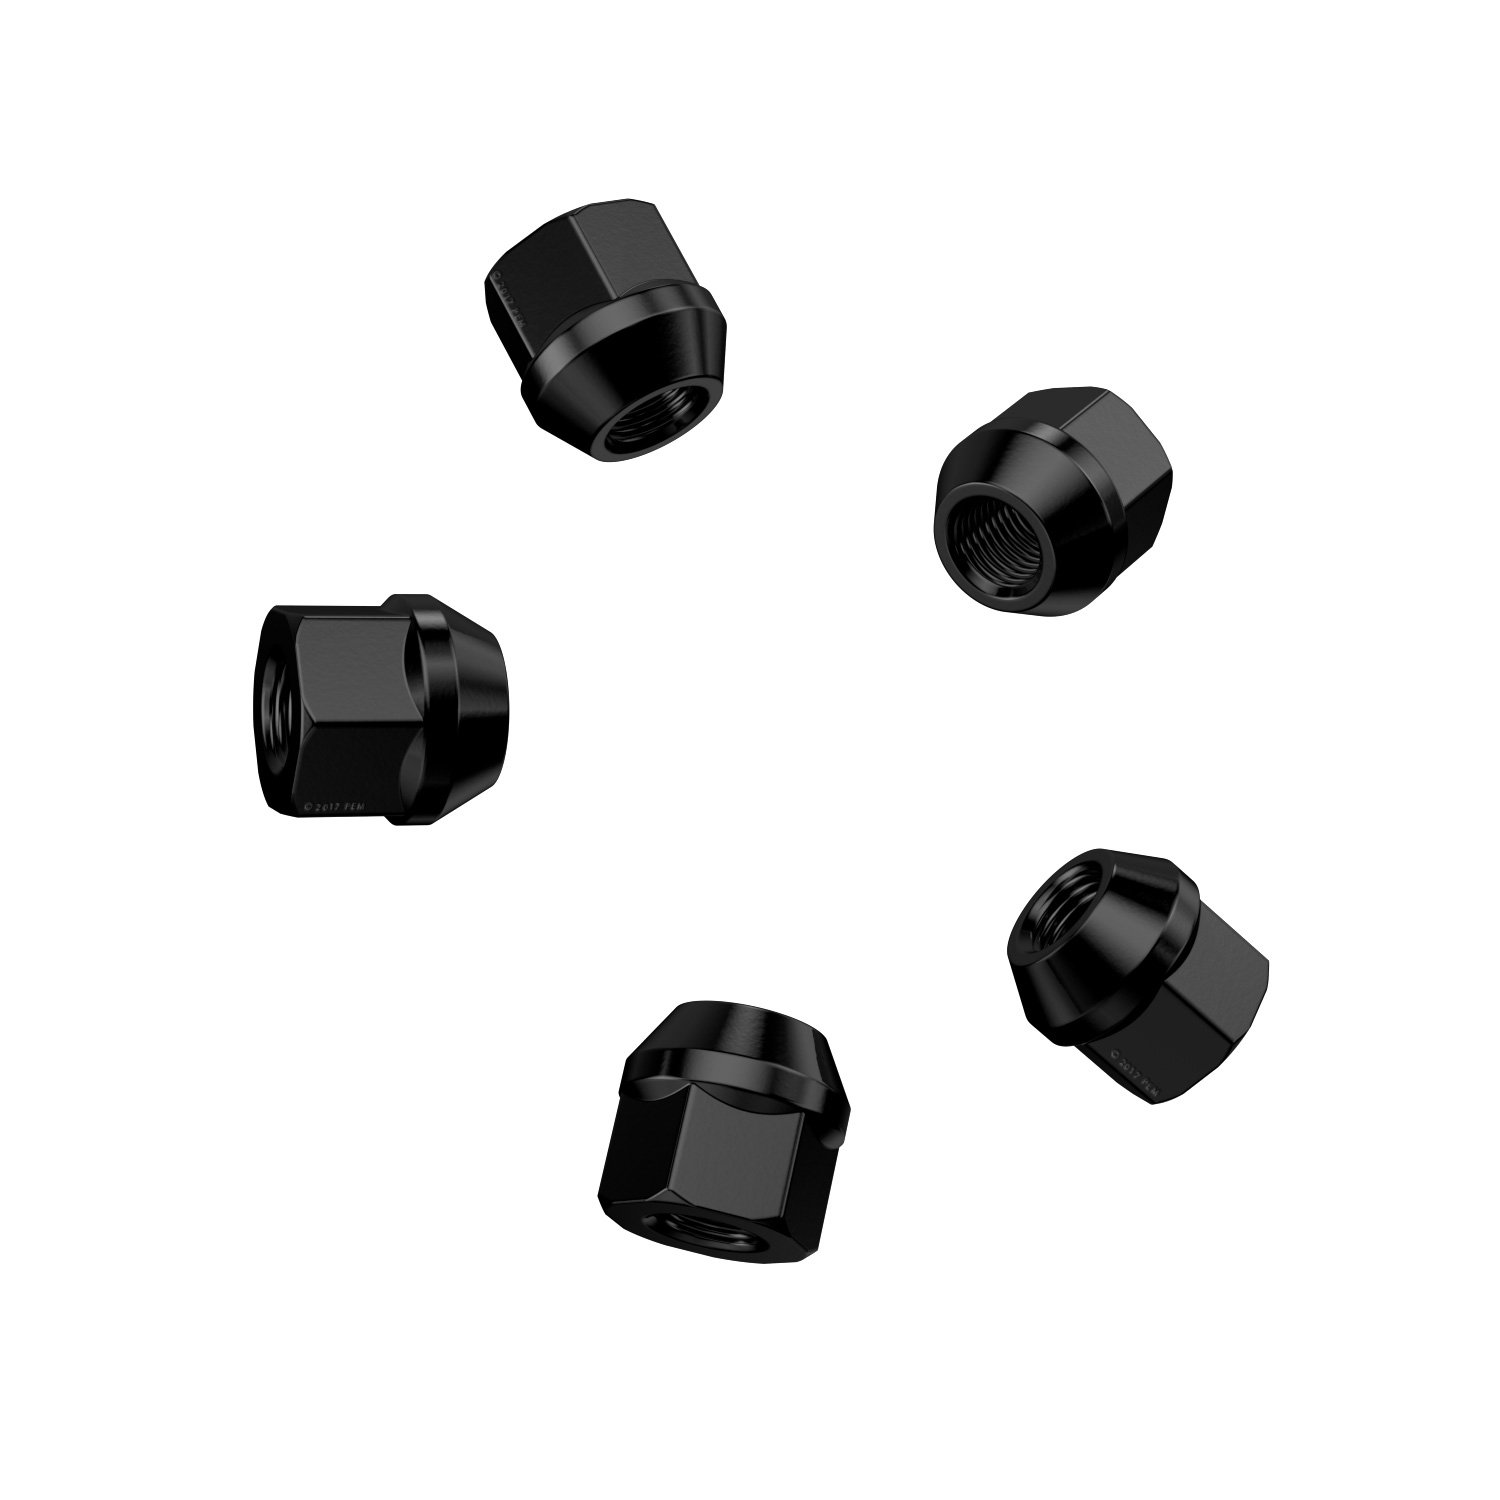 20pc Black Open End Lug Nuts - 7/16''-20 Thread Size - 0.85'' Length - Cone Conical Taper Acorn Seat - Installs with 19mm or 3/4'' Hex Socket by Precision European Motorwerks (Image #7)